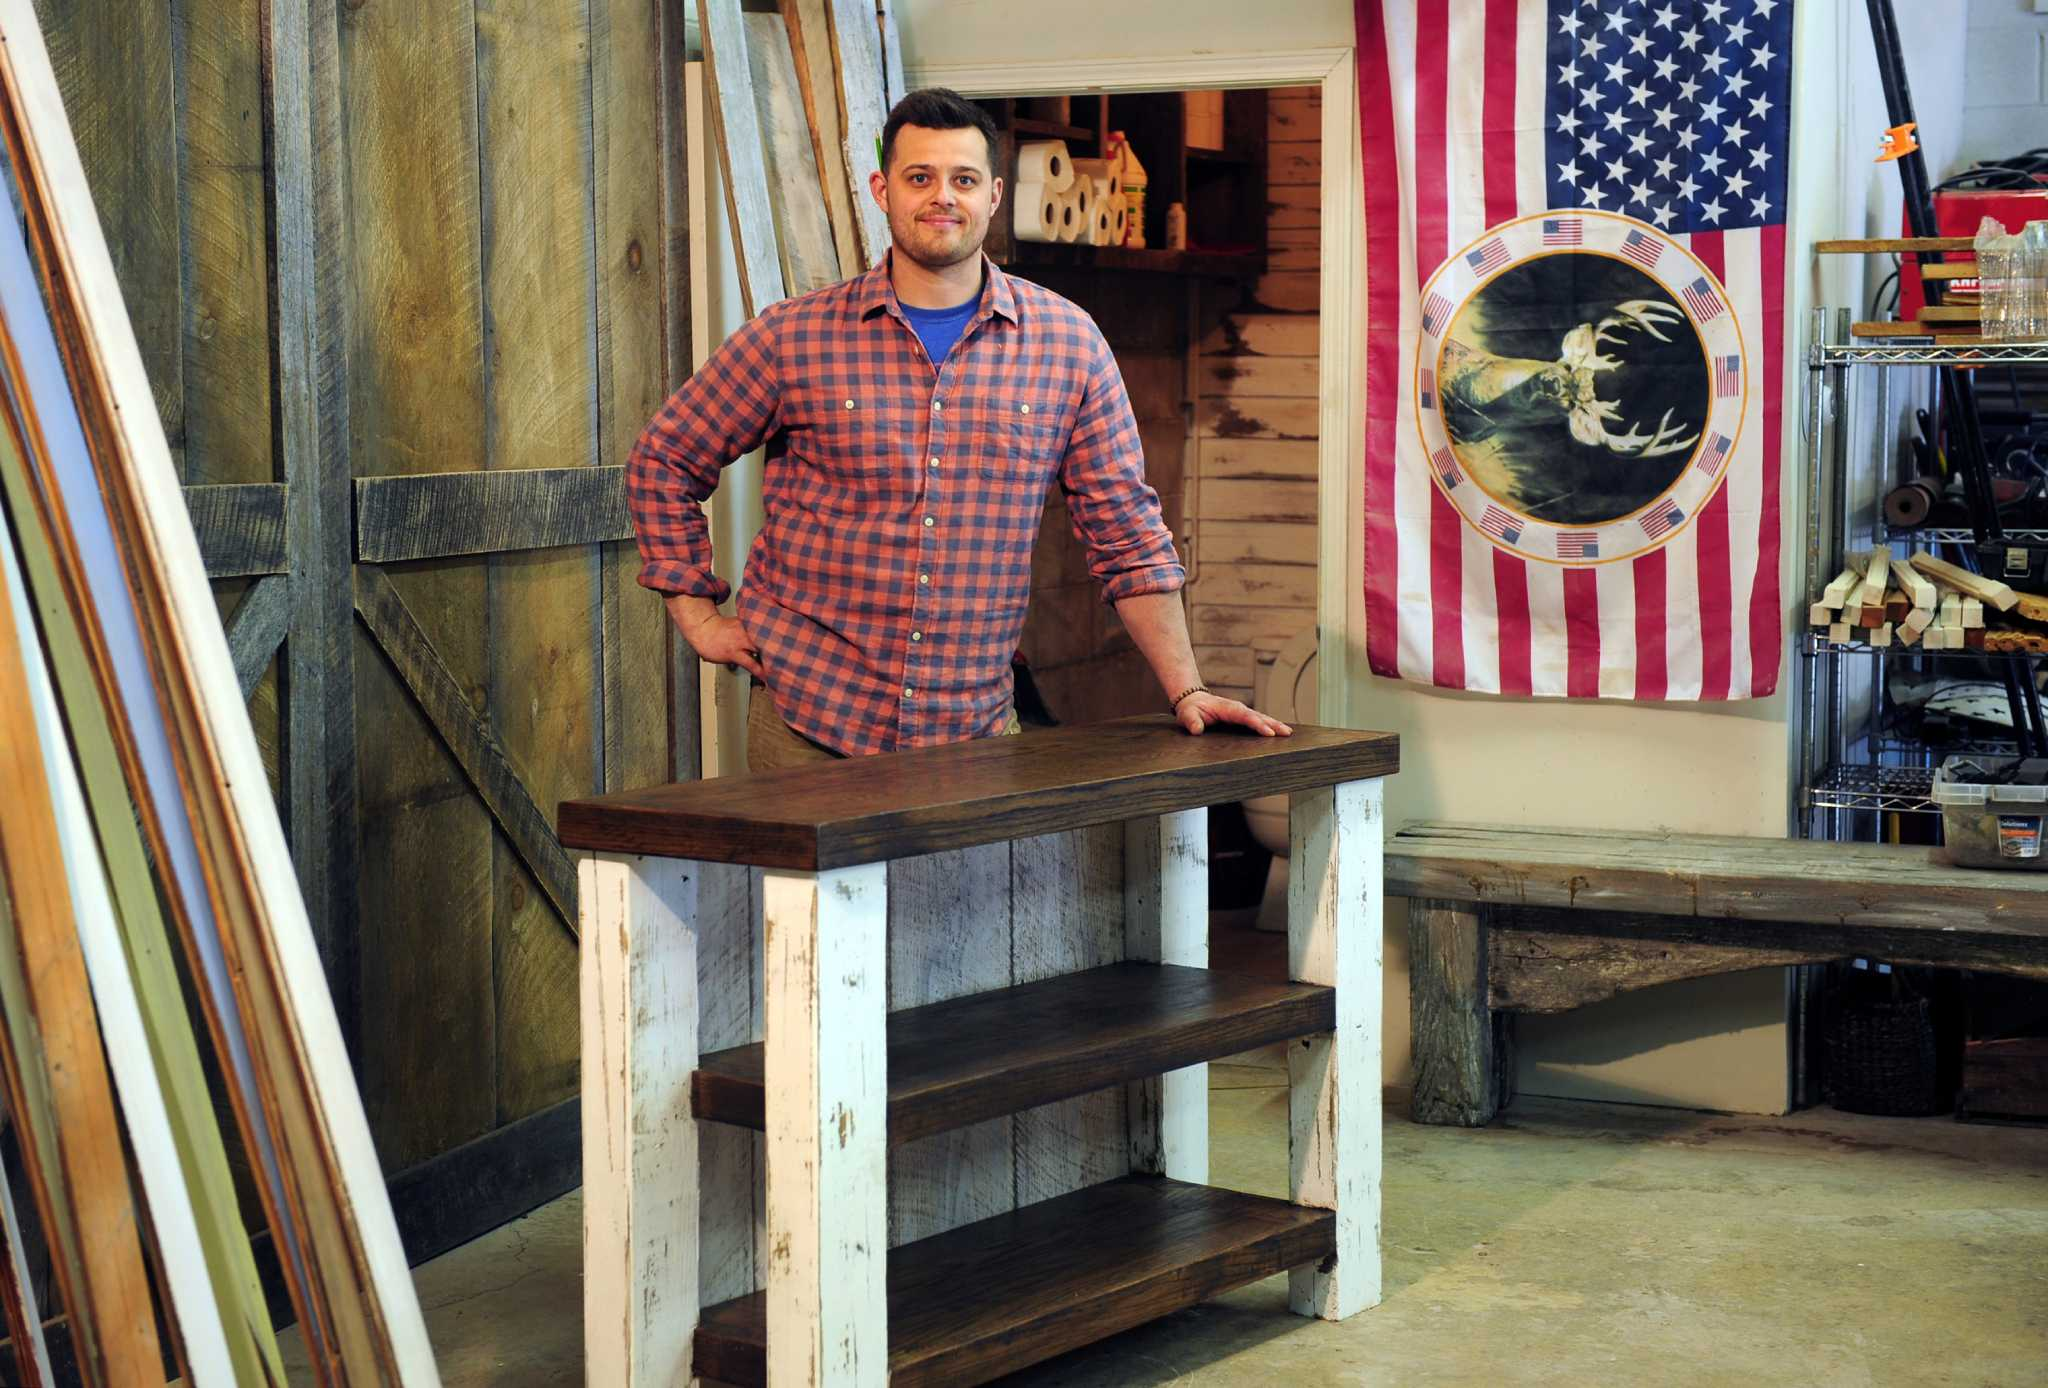 Perfect Wood And Grit Come Together For Milford Furniture Business   Connecticut  Post